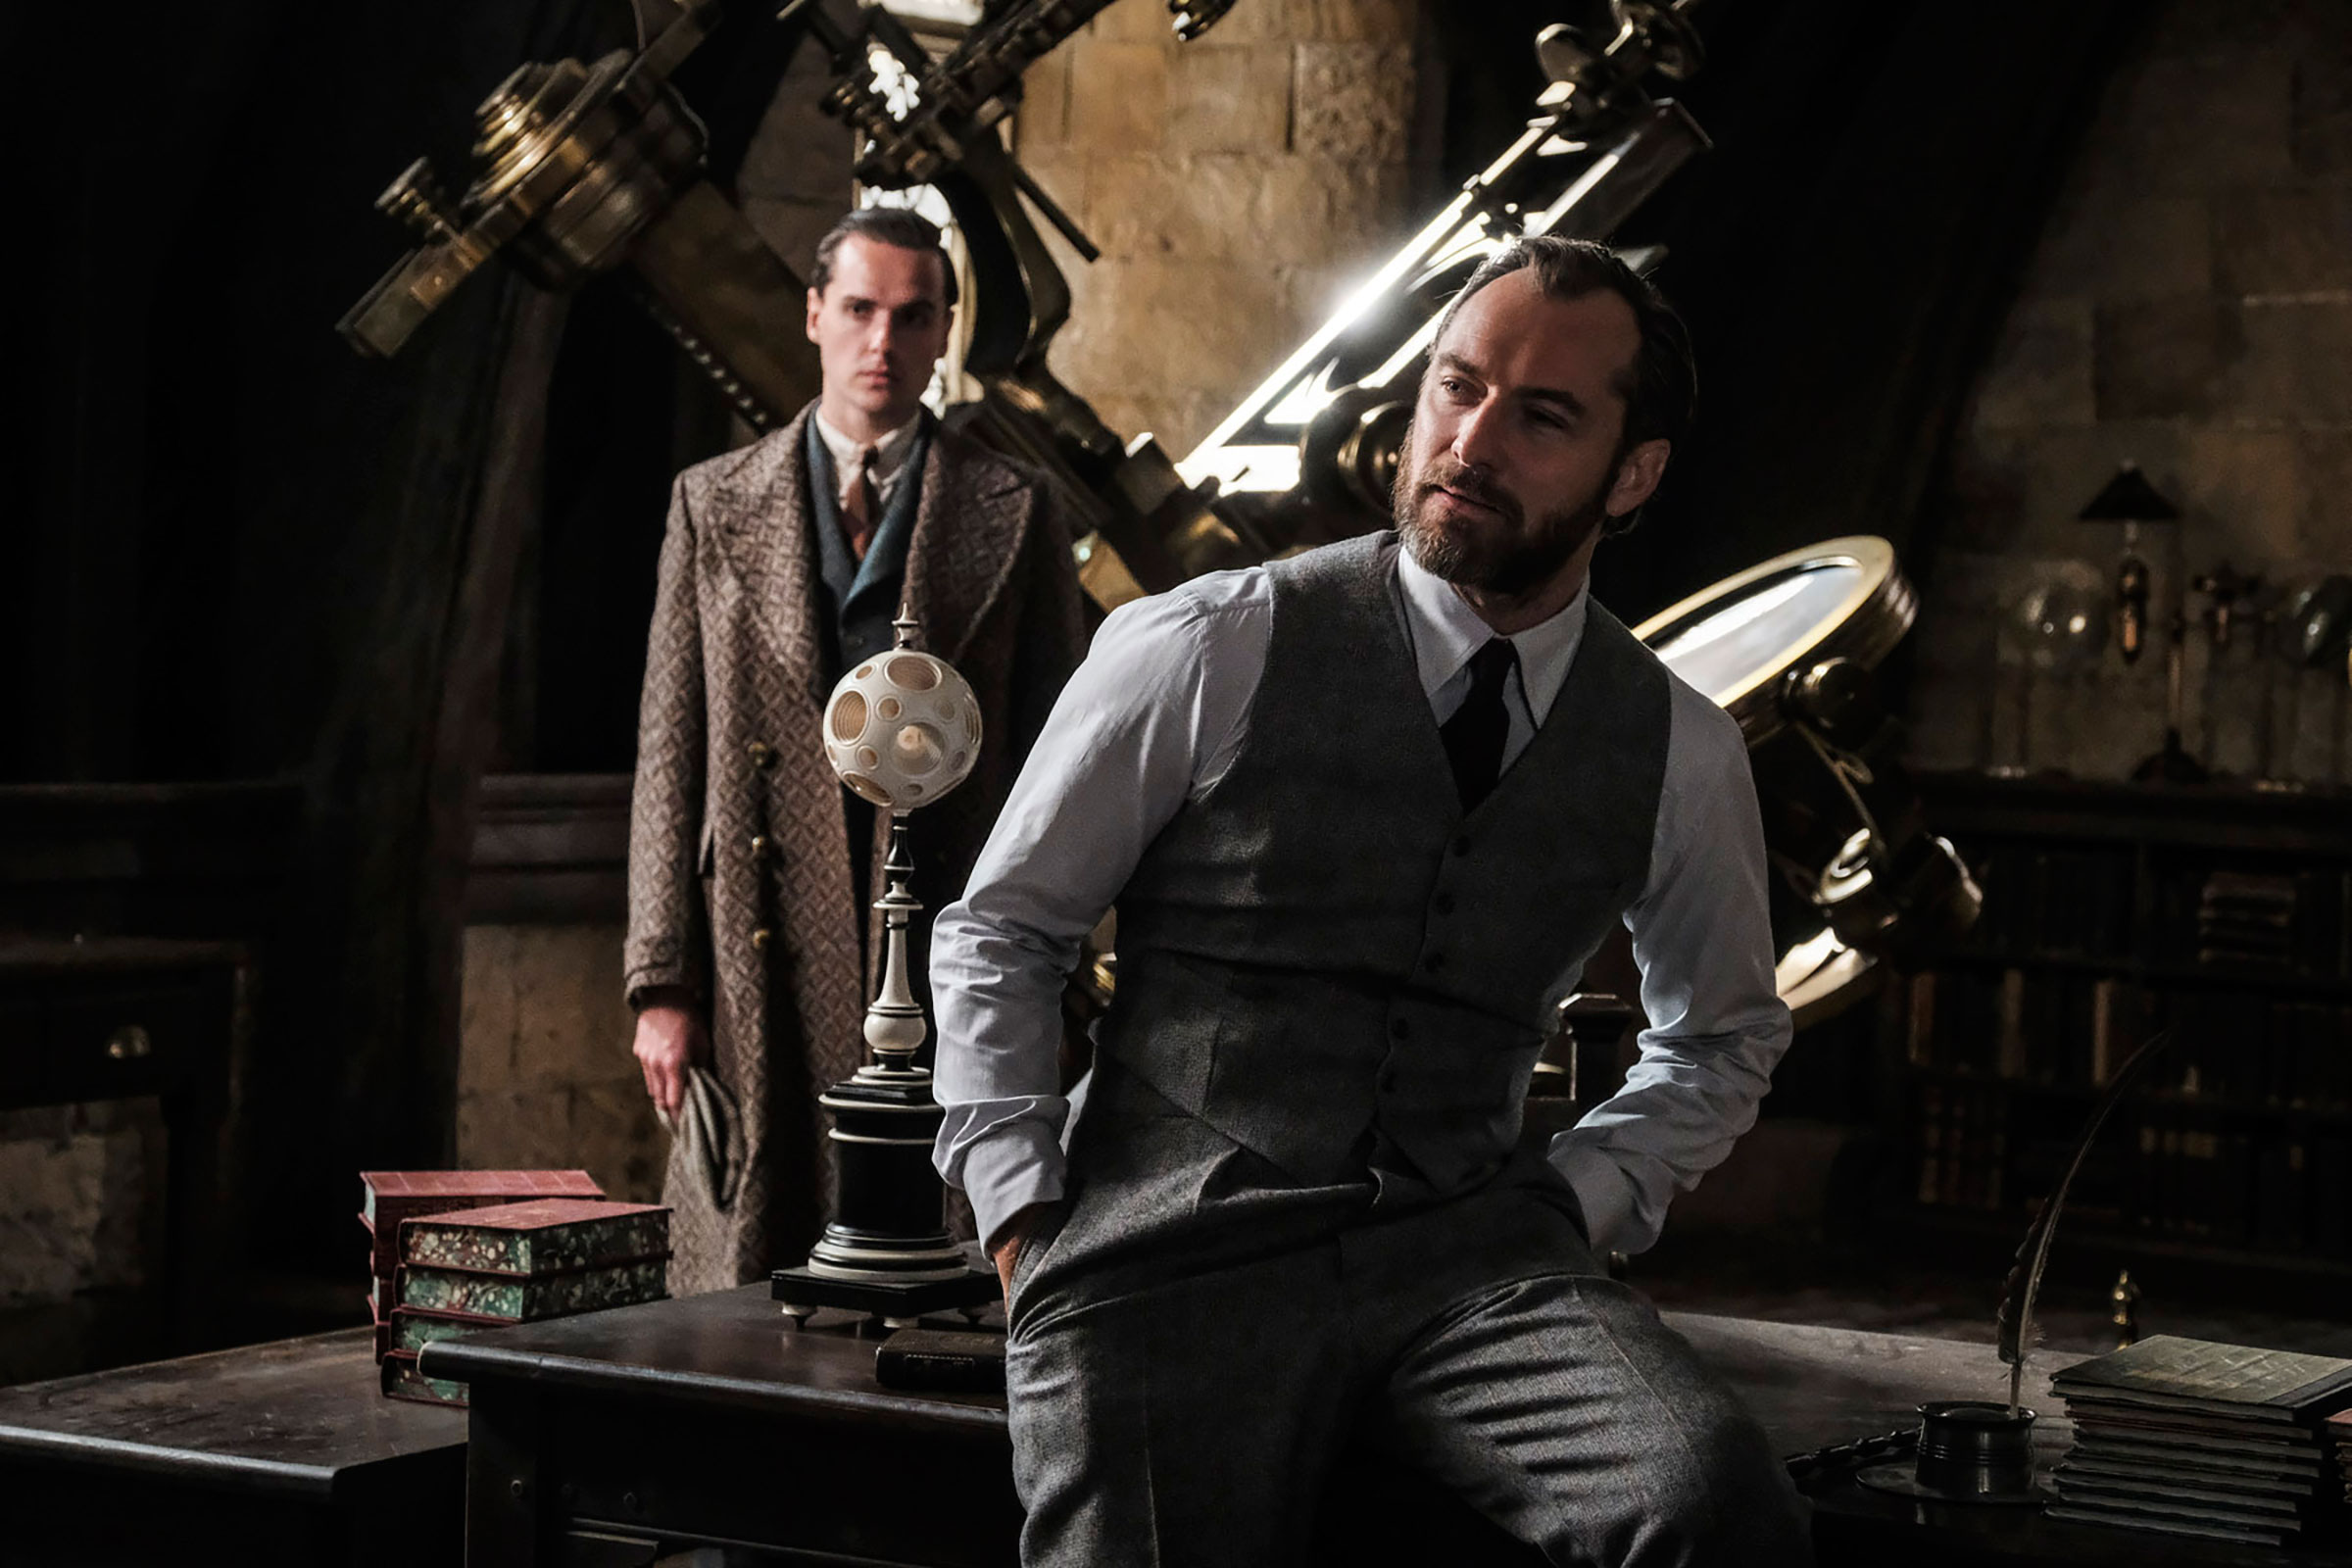 """Fantastic Beasts: The Crimes of Grindelwald"": Albus Dumbledore (Jude Law)"